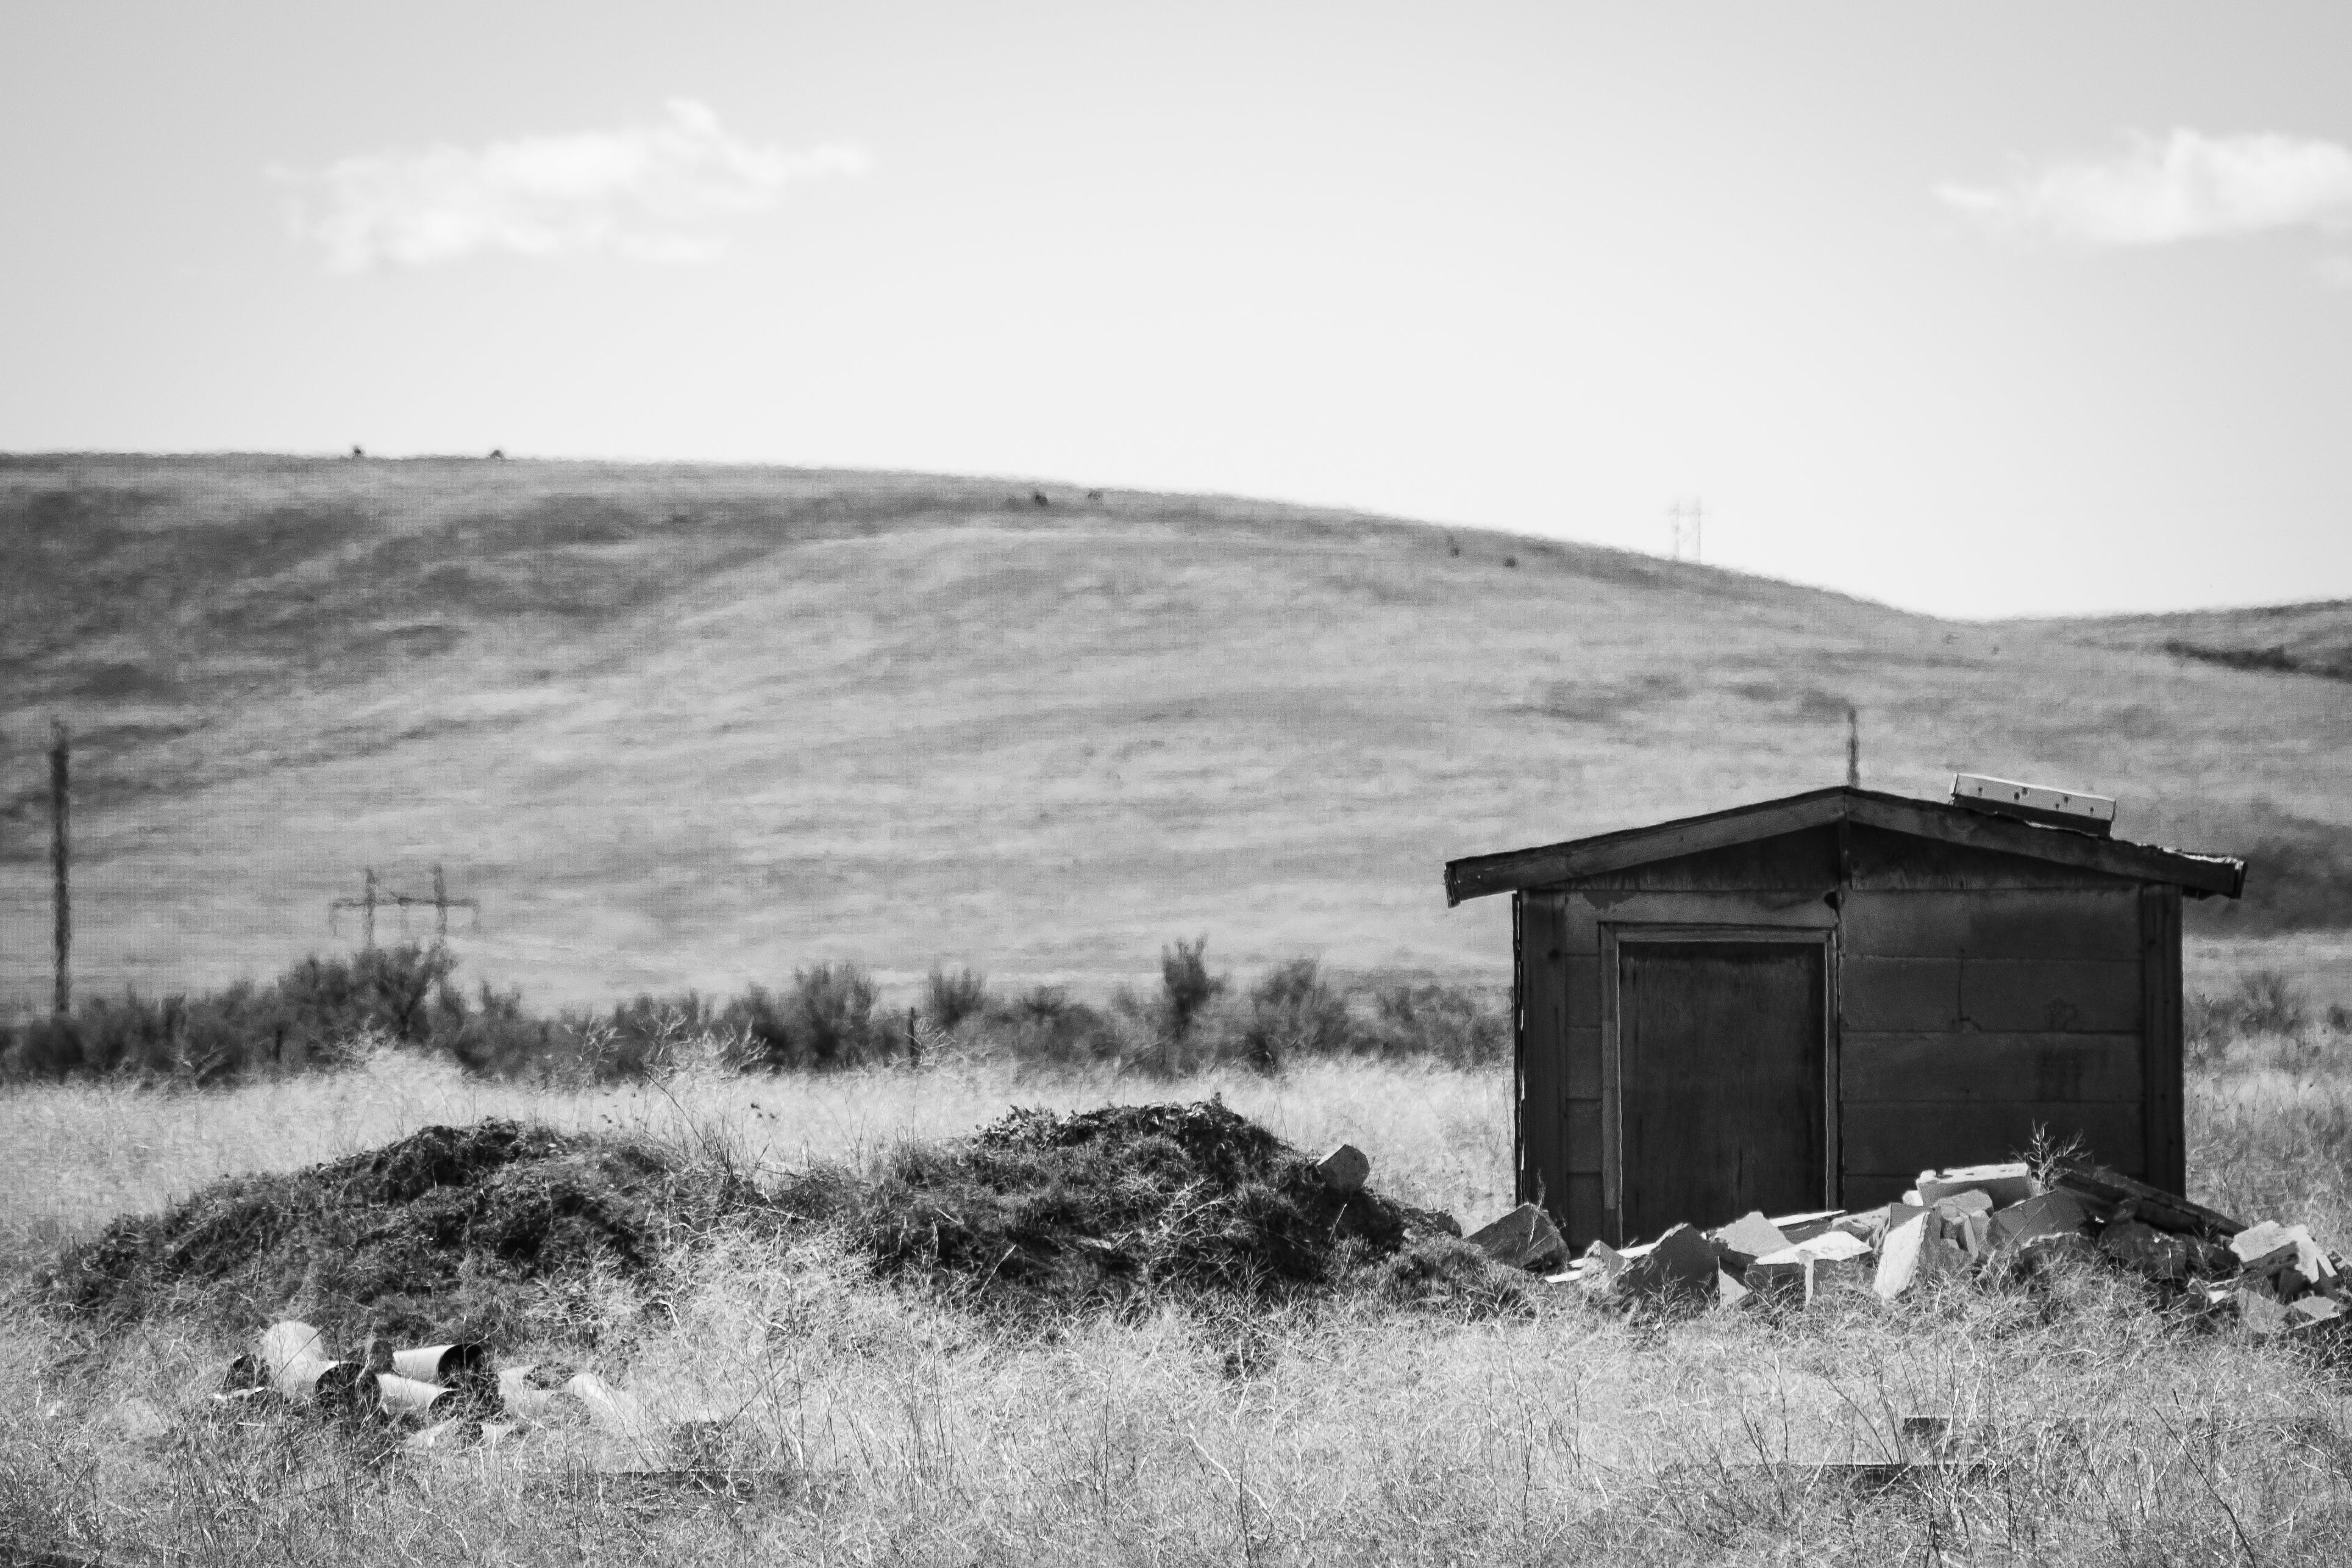 Greyscale Photography of Brown Shed Near Mountain